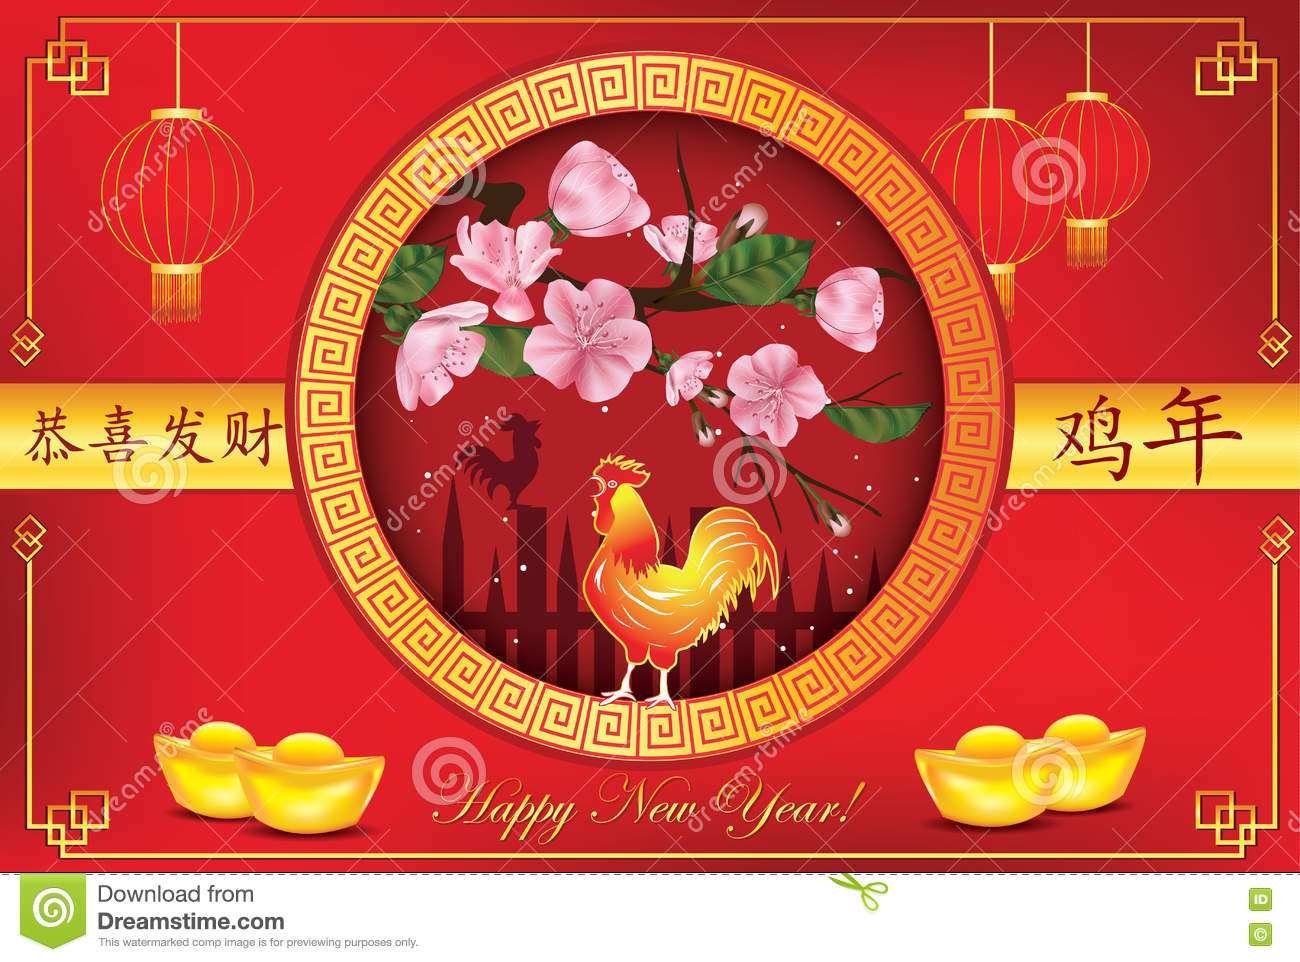 Greeting card for spring festival 2017 stock image image of greeting card for spring festival 2017 text year of the rooster happy new year contains cherry flowers golden nuggets paper lanterns and traditional m4hsunfo